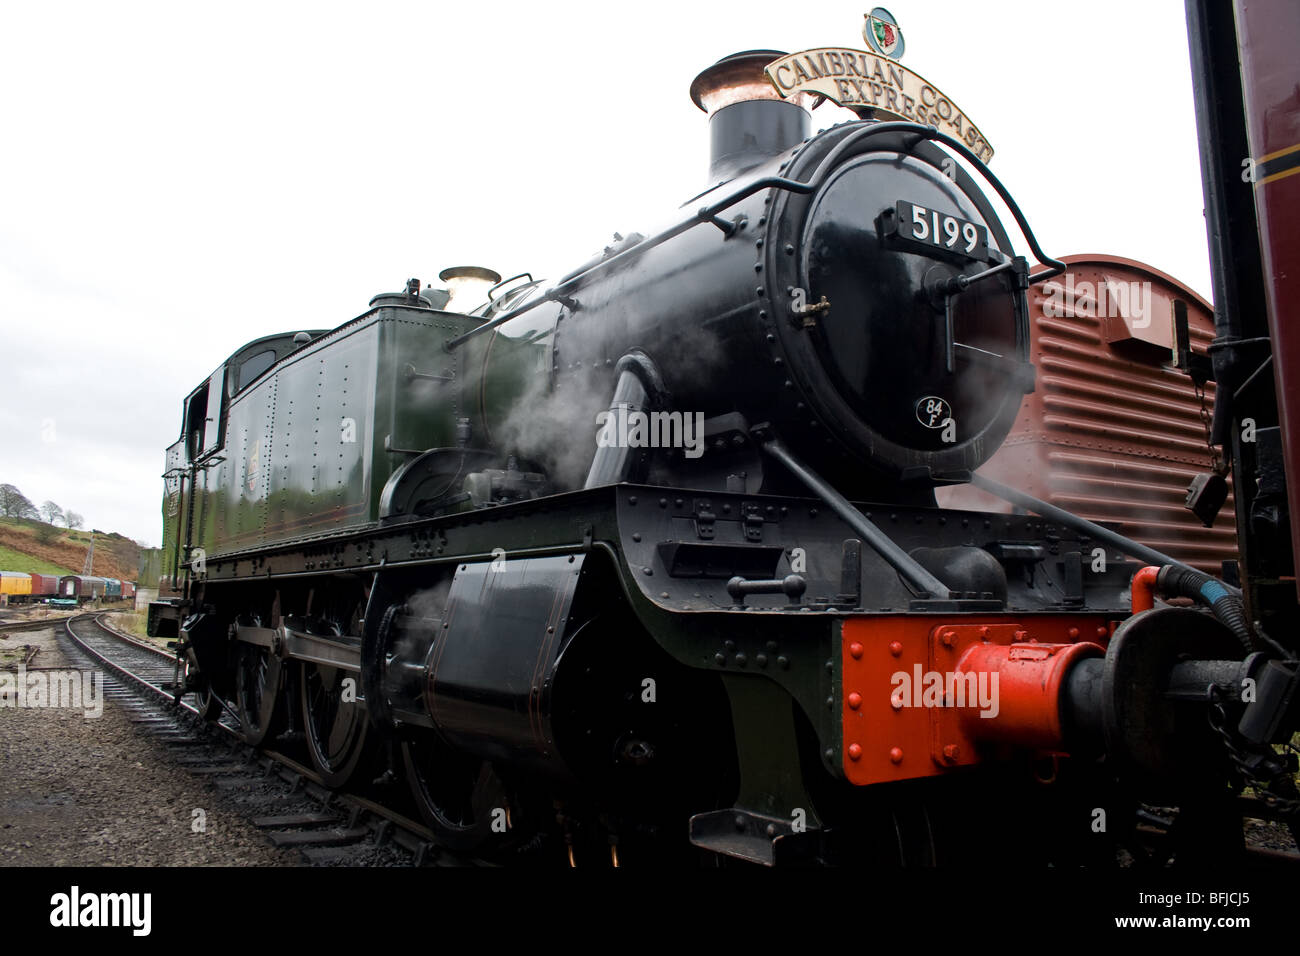 GWR Large Prairie steam locomotive at Cheddleton, Staffordshire - Stock Image